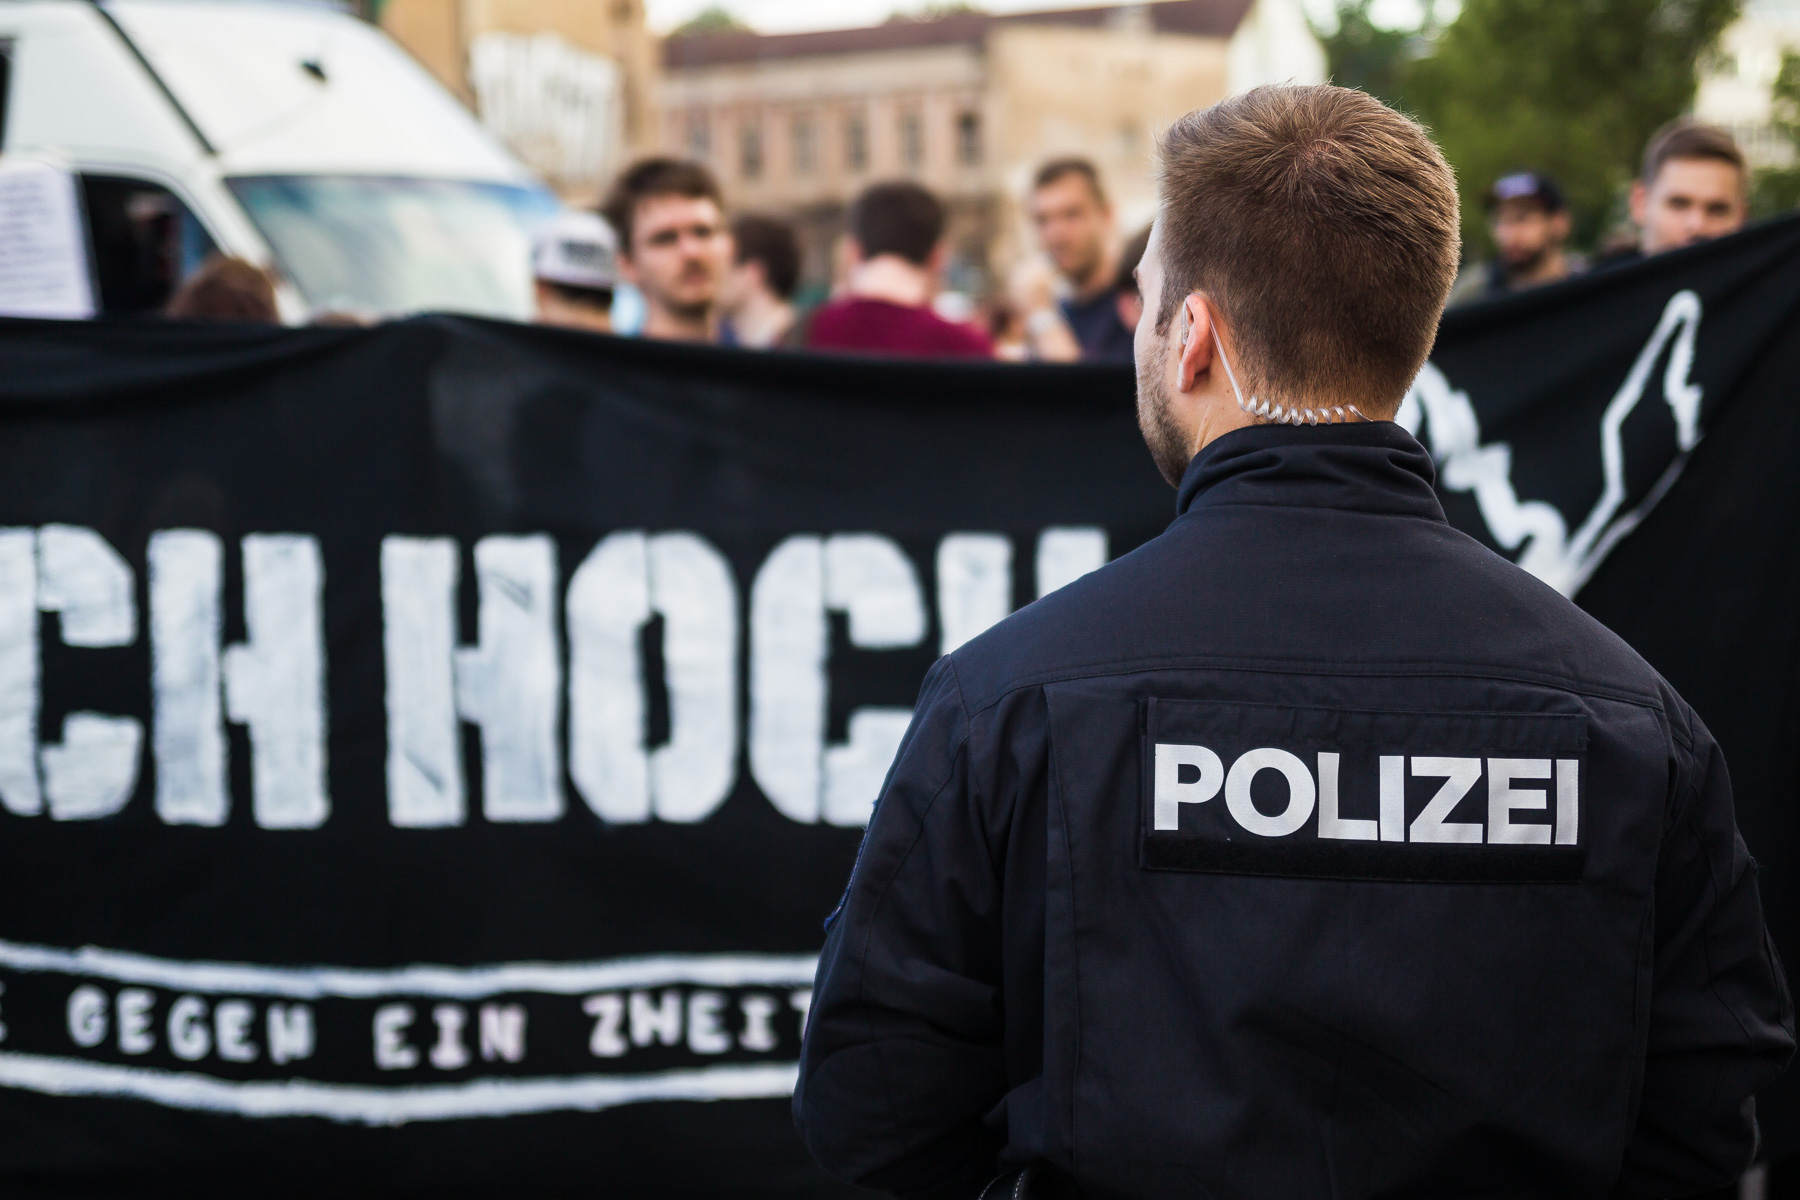 Mit HKNKRZ Shirt bei der Pegida Demonstration